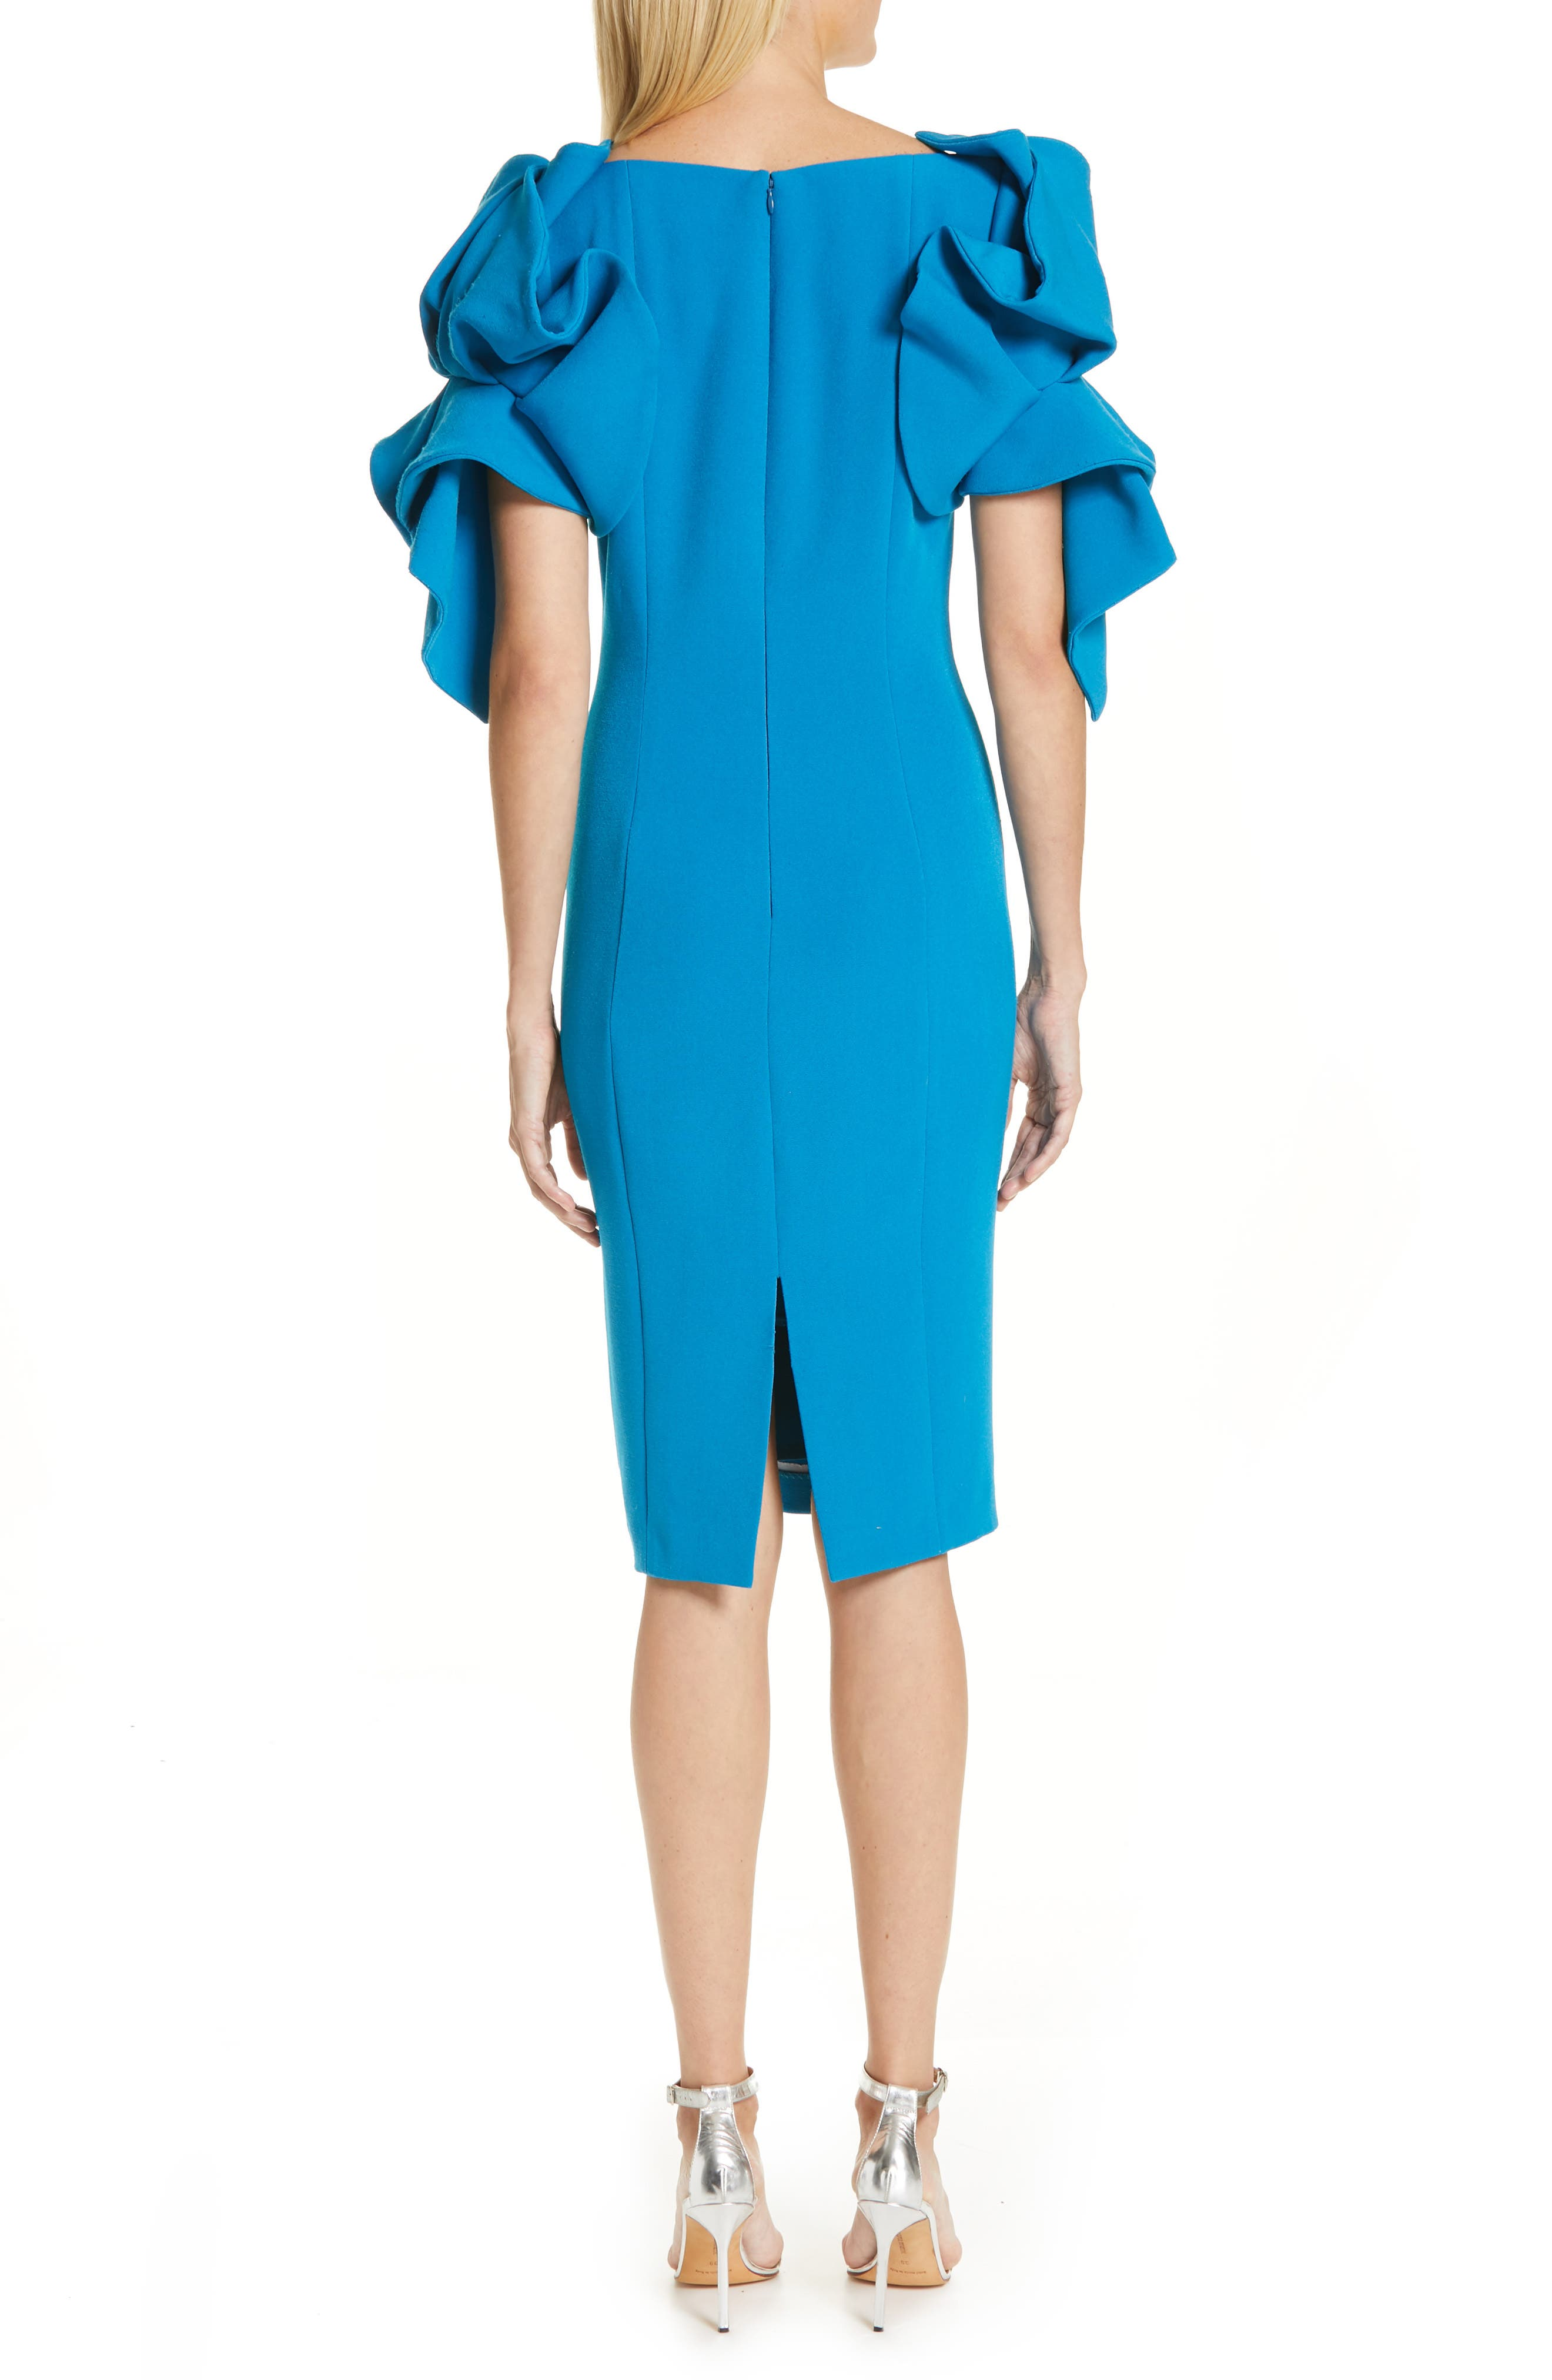 BADGLEY MISCHKA COLLECTION,                             Origami Sleeve Cocktail Dress,                             Alternate thumbnail 2, color,                             BRIGHT AQUA